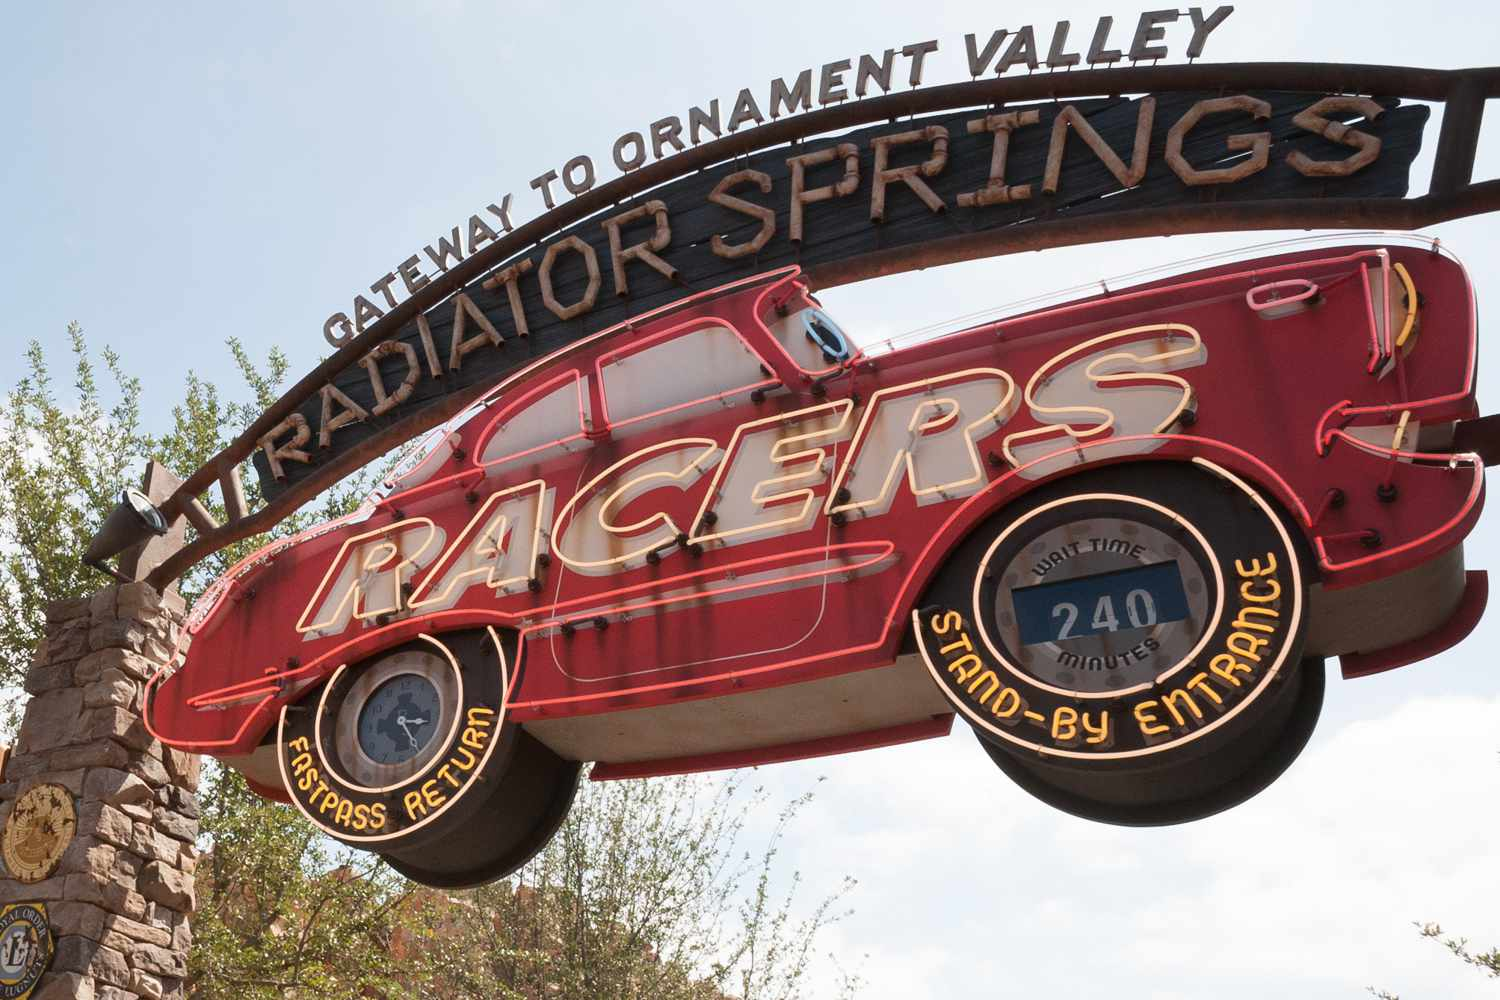 Entrance to Radiator Springs Racers in Cars Land at Disney California Adventure